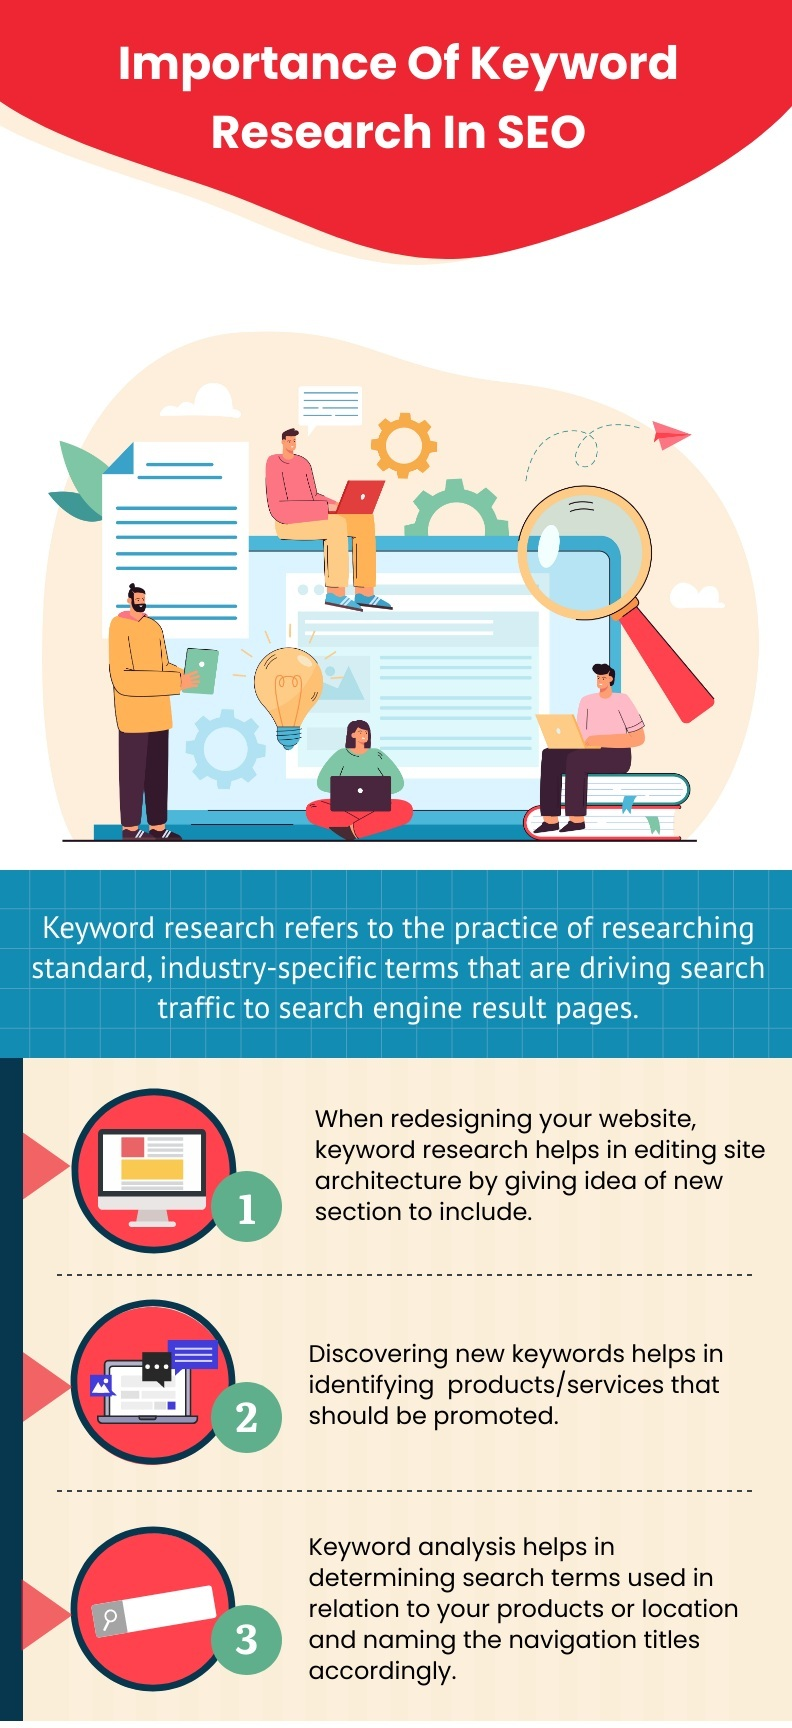 Importance-Of-Keyword-Research-In-SEO